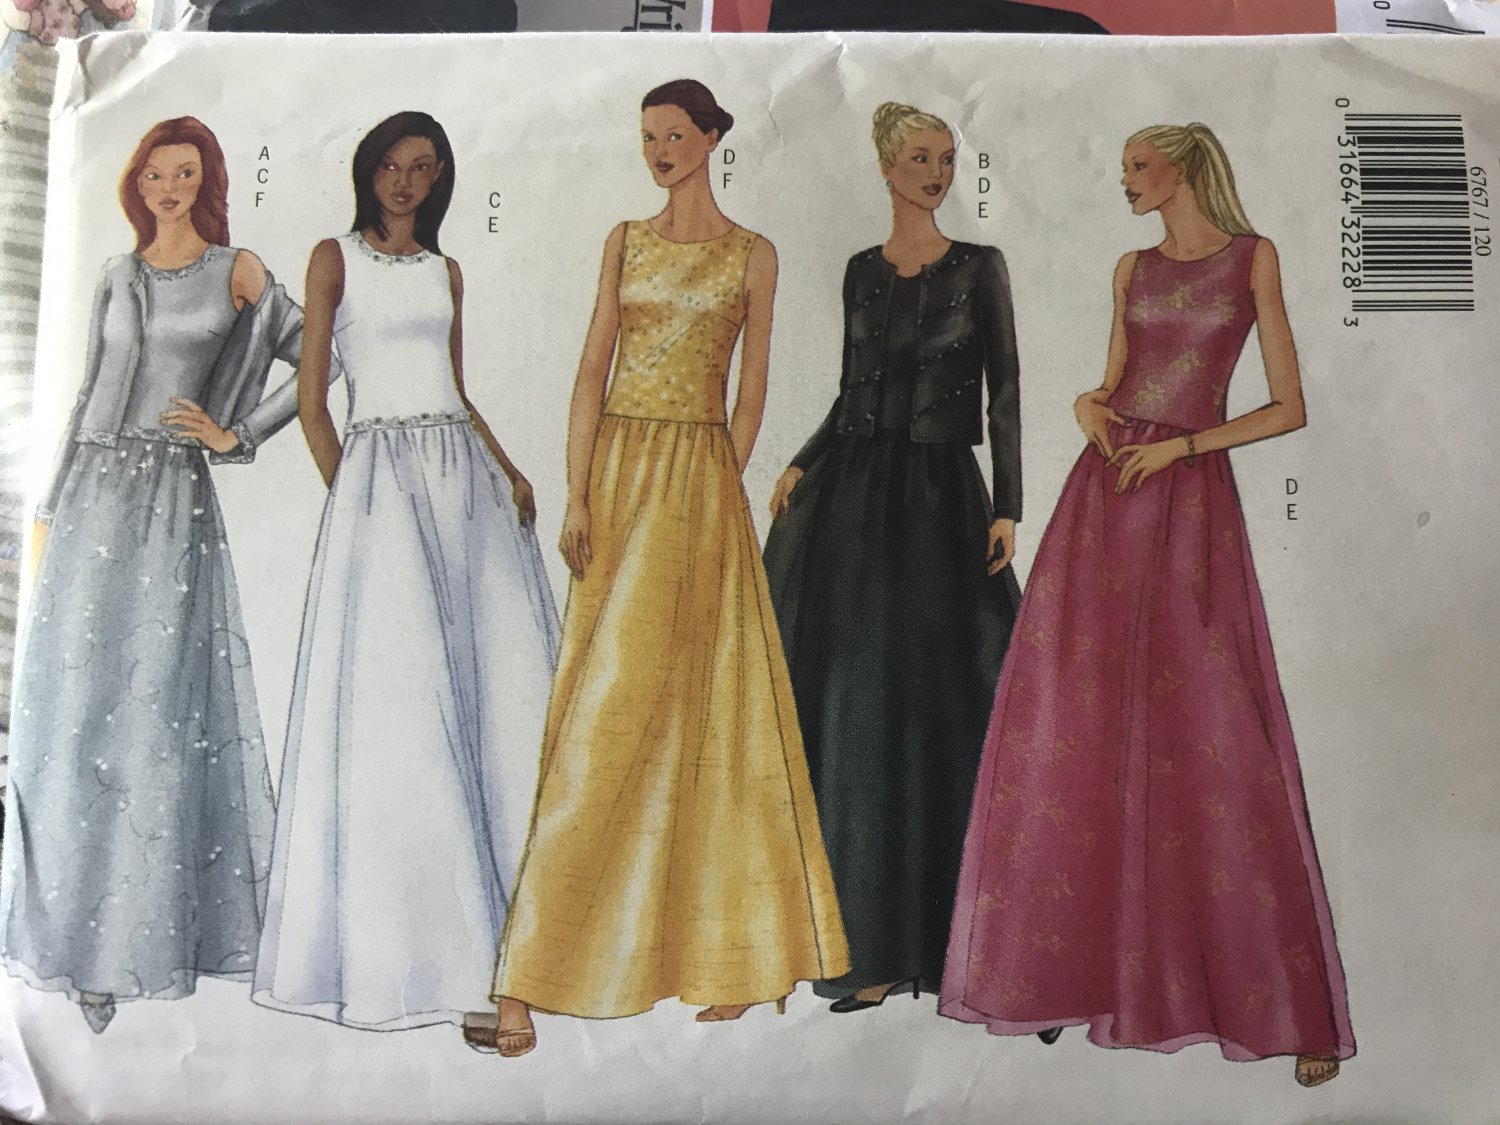 Butterick 6767 Sewing Pattern Misses' Cardigan, Top Skirt prom or evening wear look Size 12-14-16